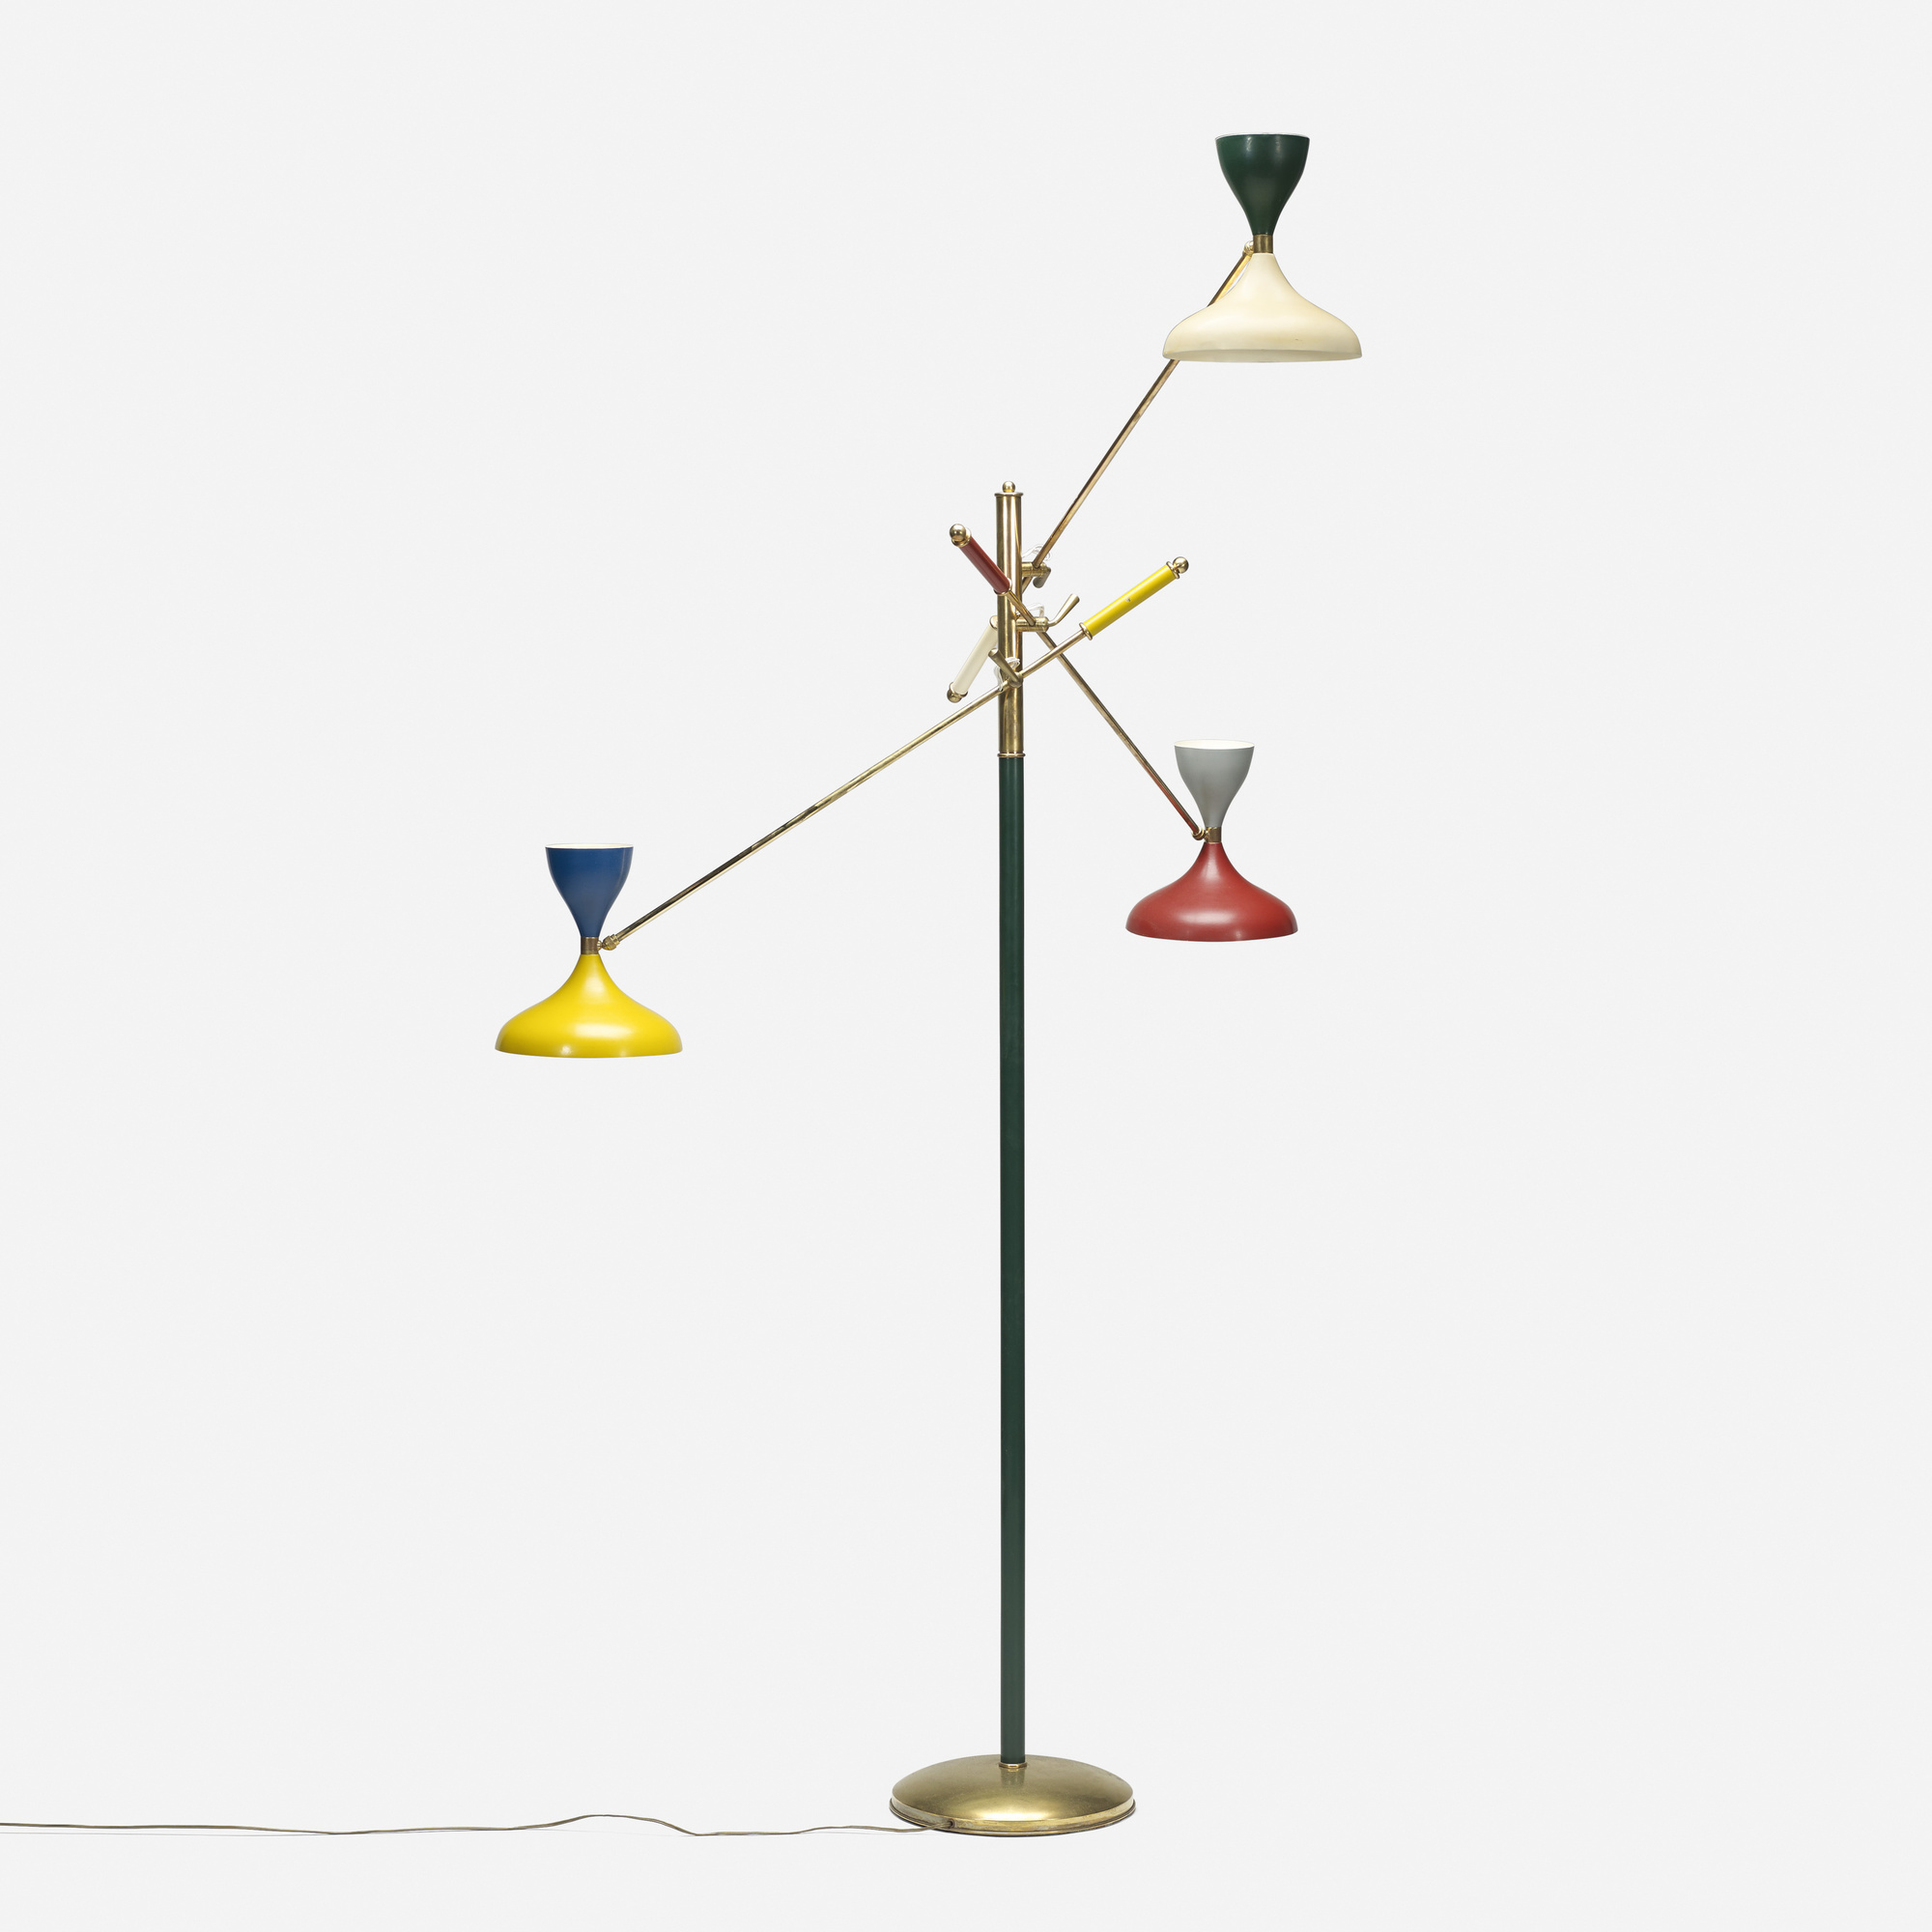 195: Stilnovo / three-arm floor lamp (1 of 1)